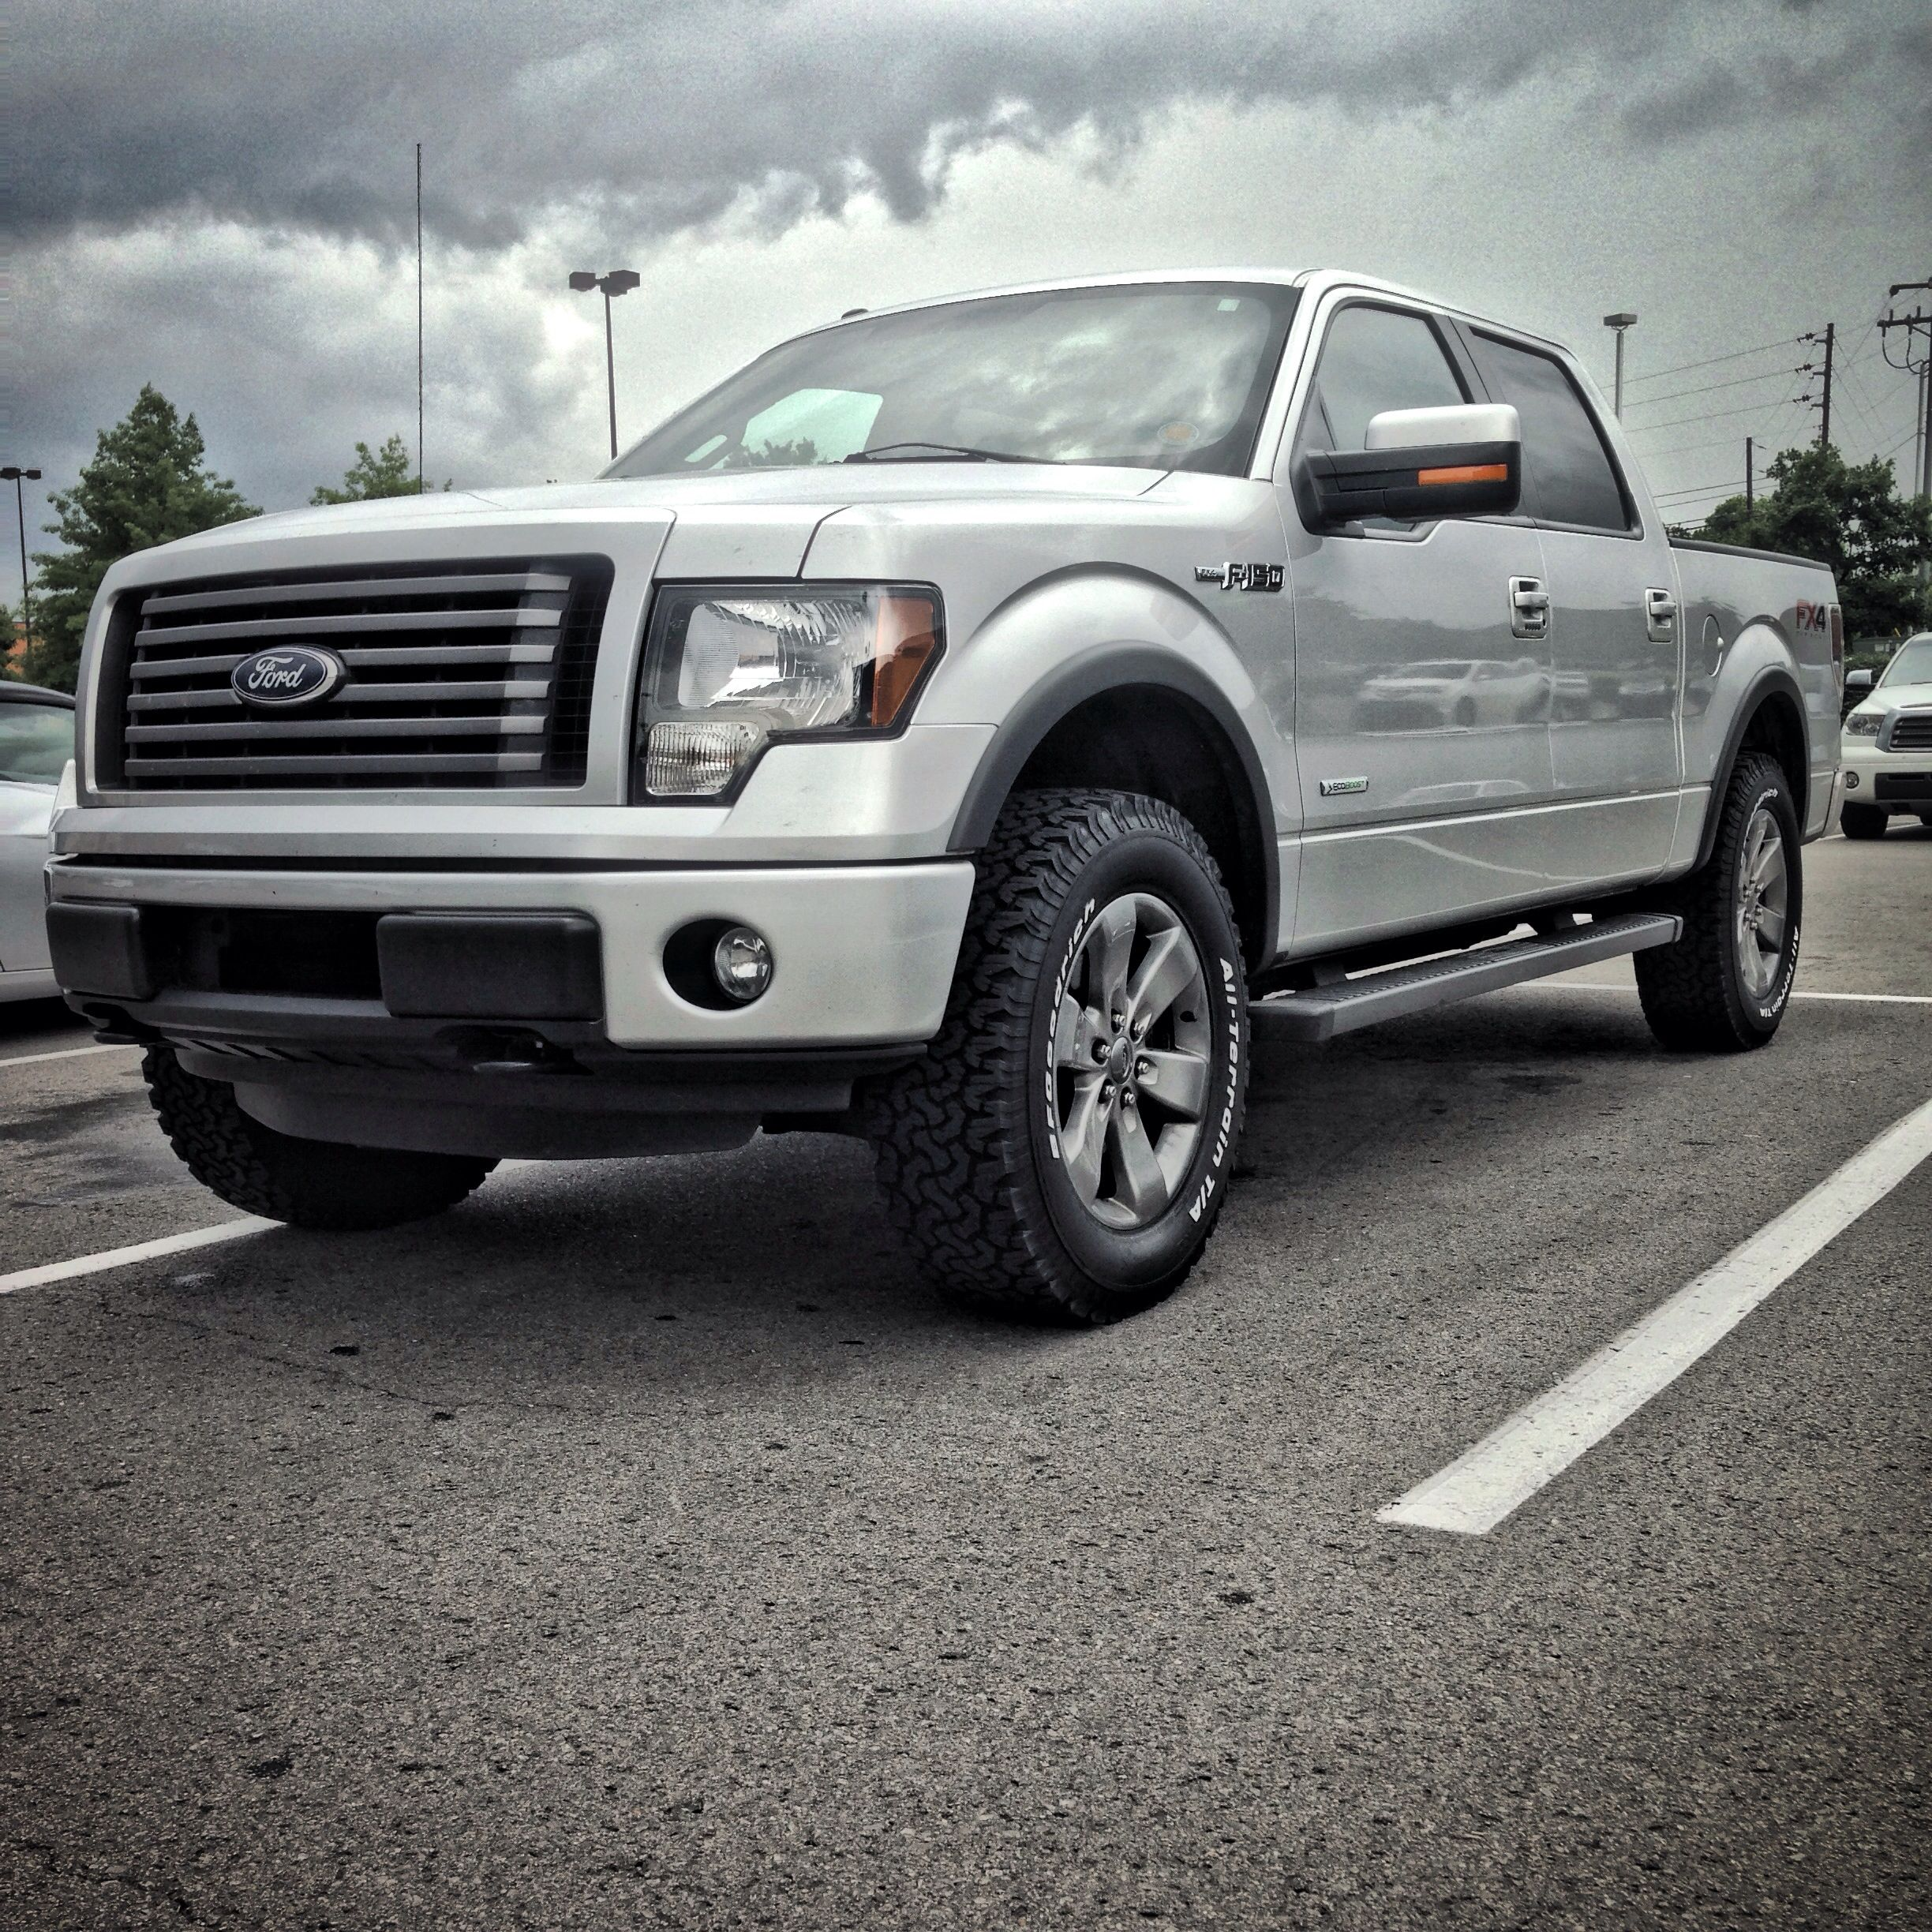 Leveling Kit For Ford F150: Leveled F150 FX4 On 35's